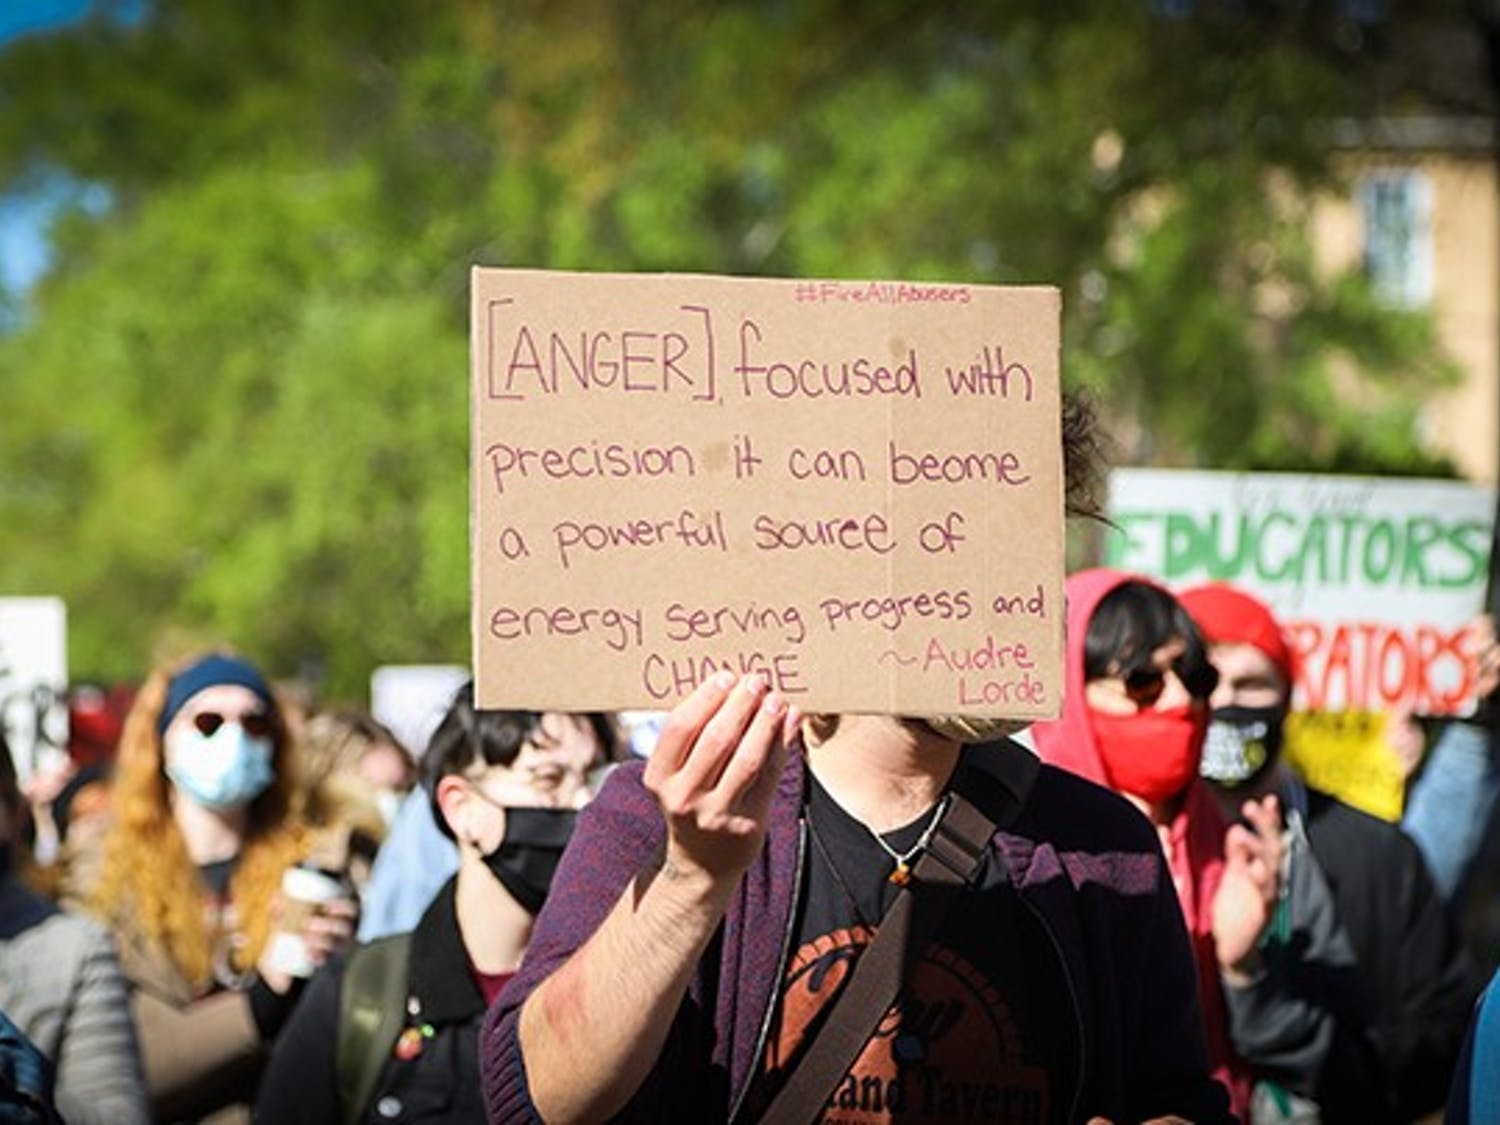 """A marching protest attendee holds a sign that has the quote """"[Anger], focused with precision it can become a powerful source of energy serving progress and change"""" by Audre Lorde written on it."""